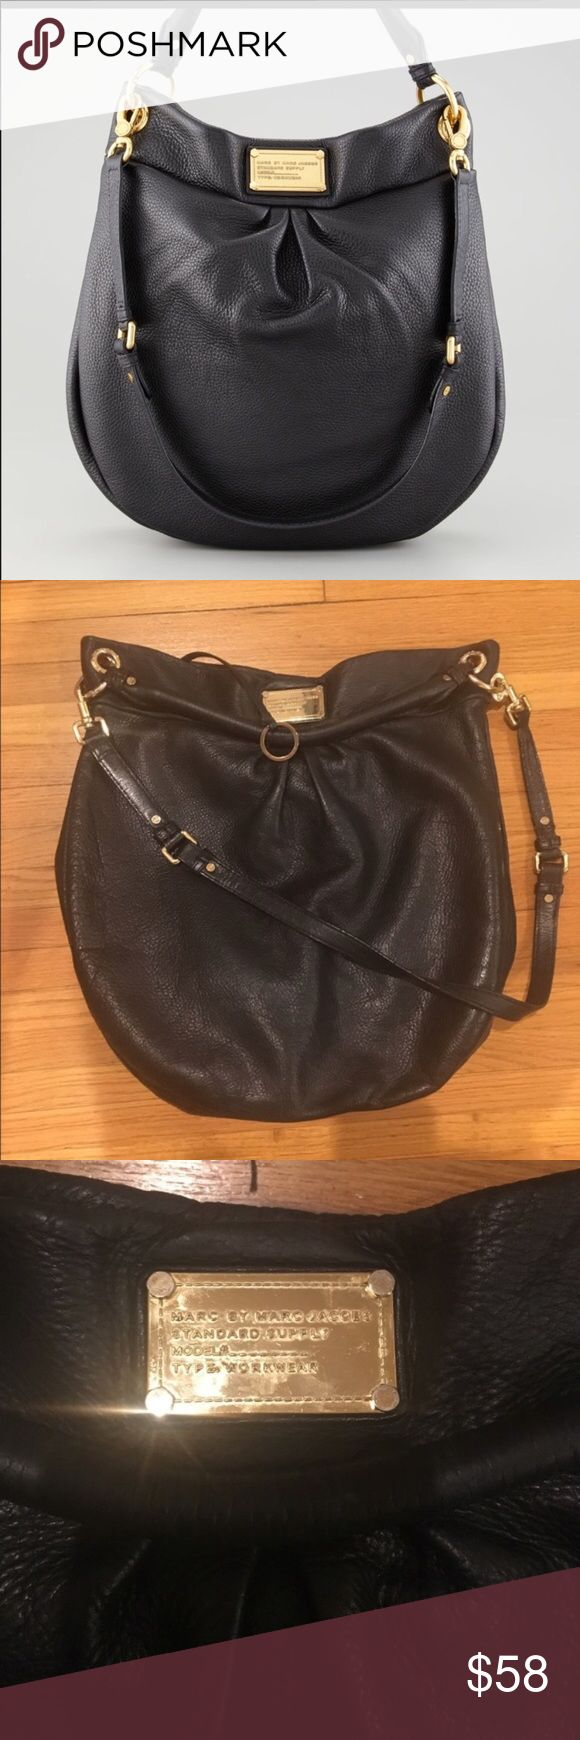 Marc by Marc Jacobs Classic Q Hillier Marc by Marc Jacobs Classic Q Hillier crossbody. Triple pleats below the workwear-inspired logo add subtle dimension to a soft, slouchy leather hobo. A single rolled handle and an optional, adjustable crossbody strap provide convenient carrying options for the versatile style. Magnetic snap closure. Interior zip, wall and cell phone pockets. Logo-print lining. Leather. By MARC BY MARC JACOBS; imported. Handbags. Item #318397 Marc By Marc Jacobs Bags…